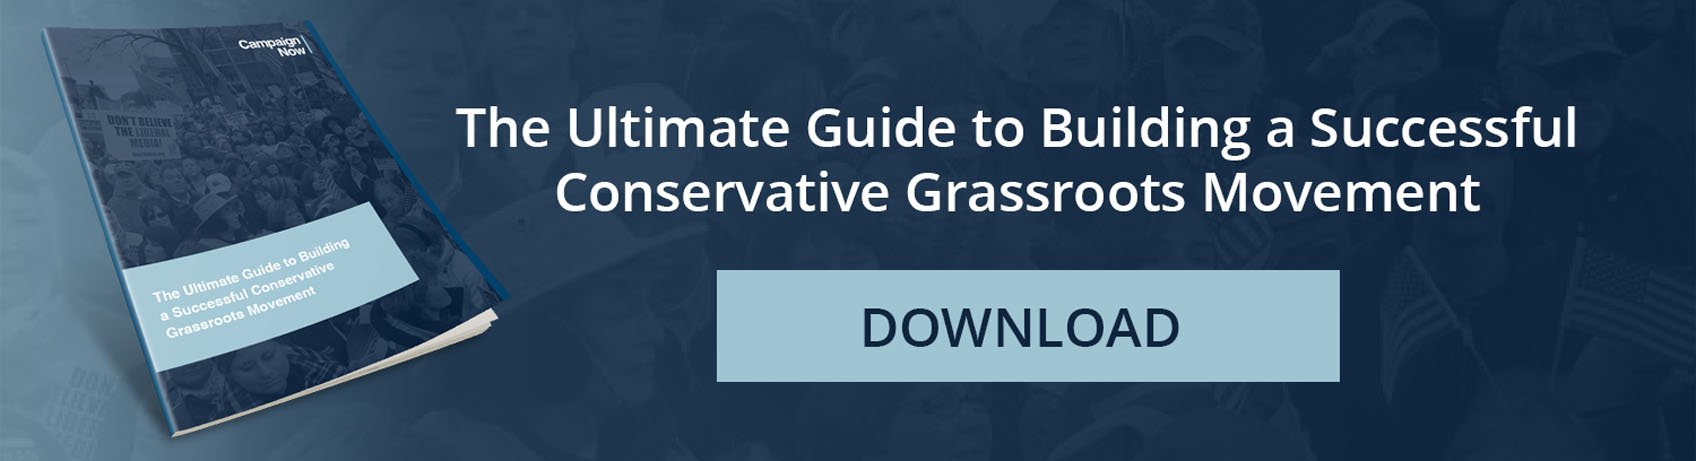 The Ultimate Guide to Building a Successful Conservative Grassroots Movement